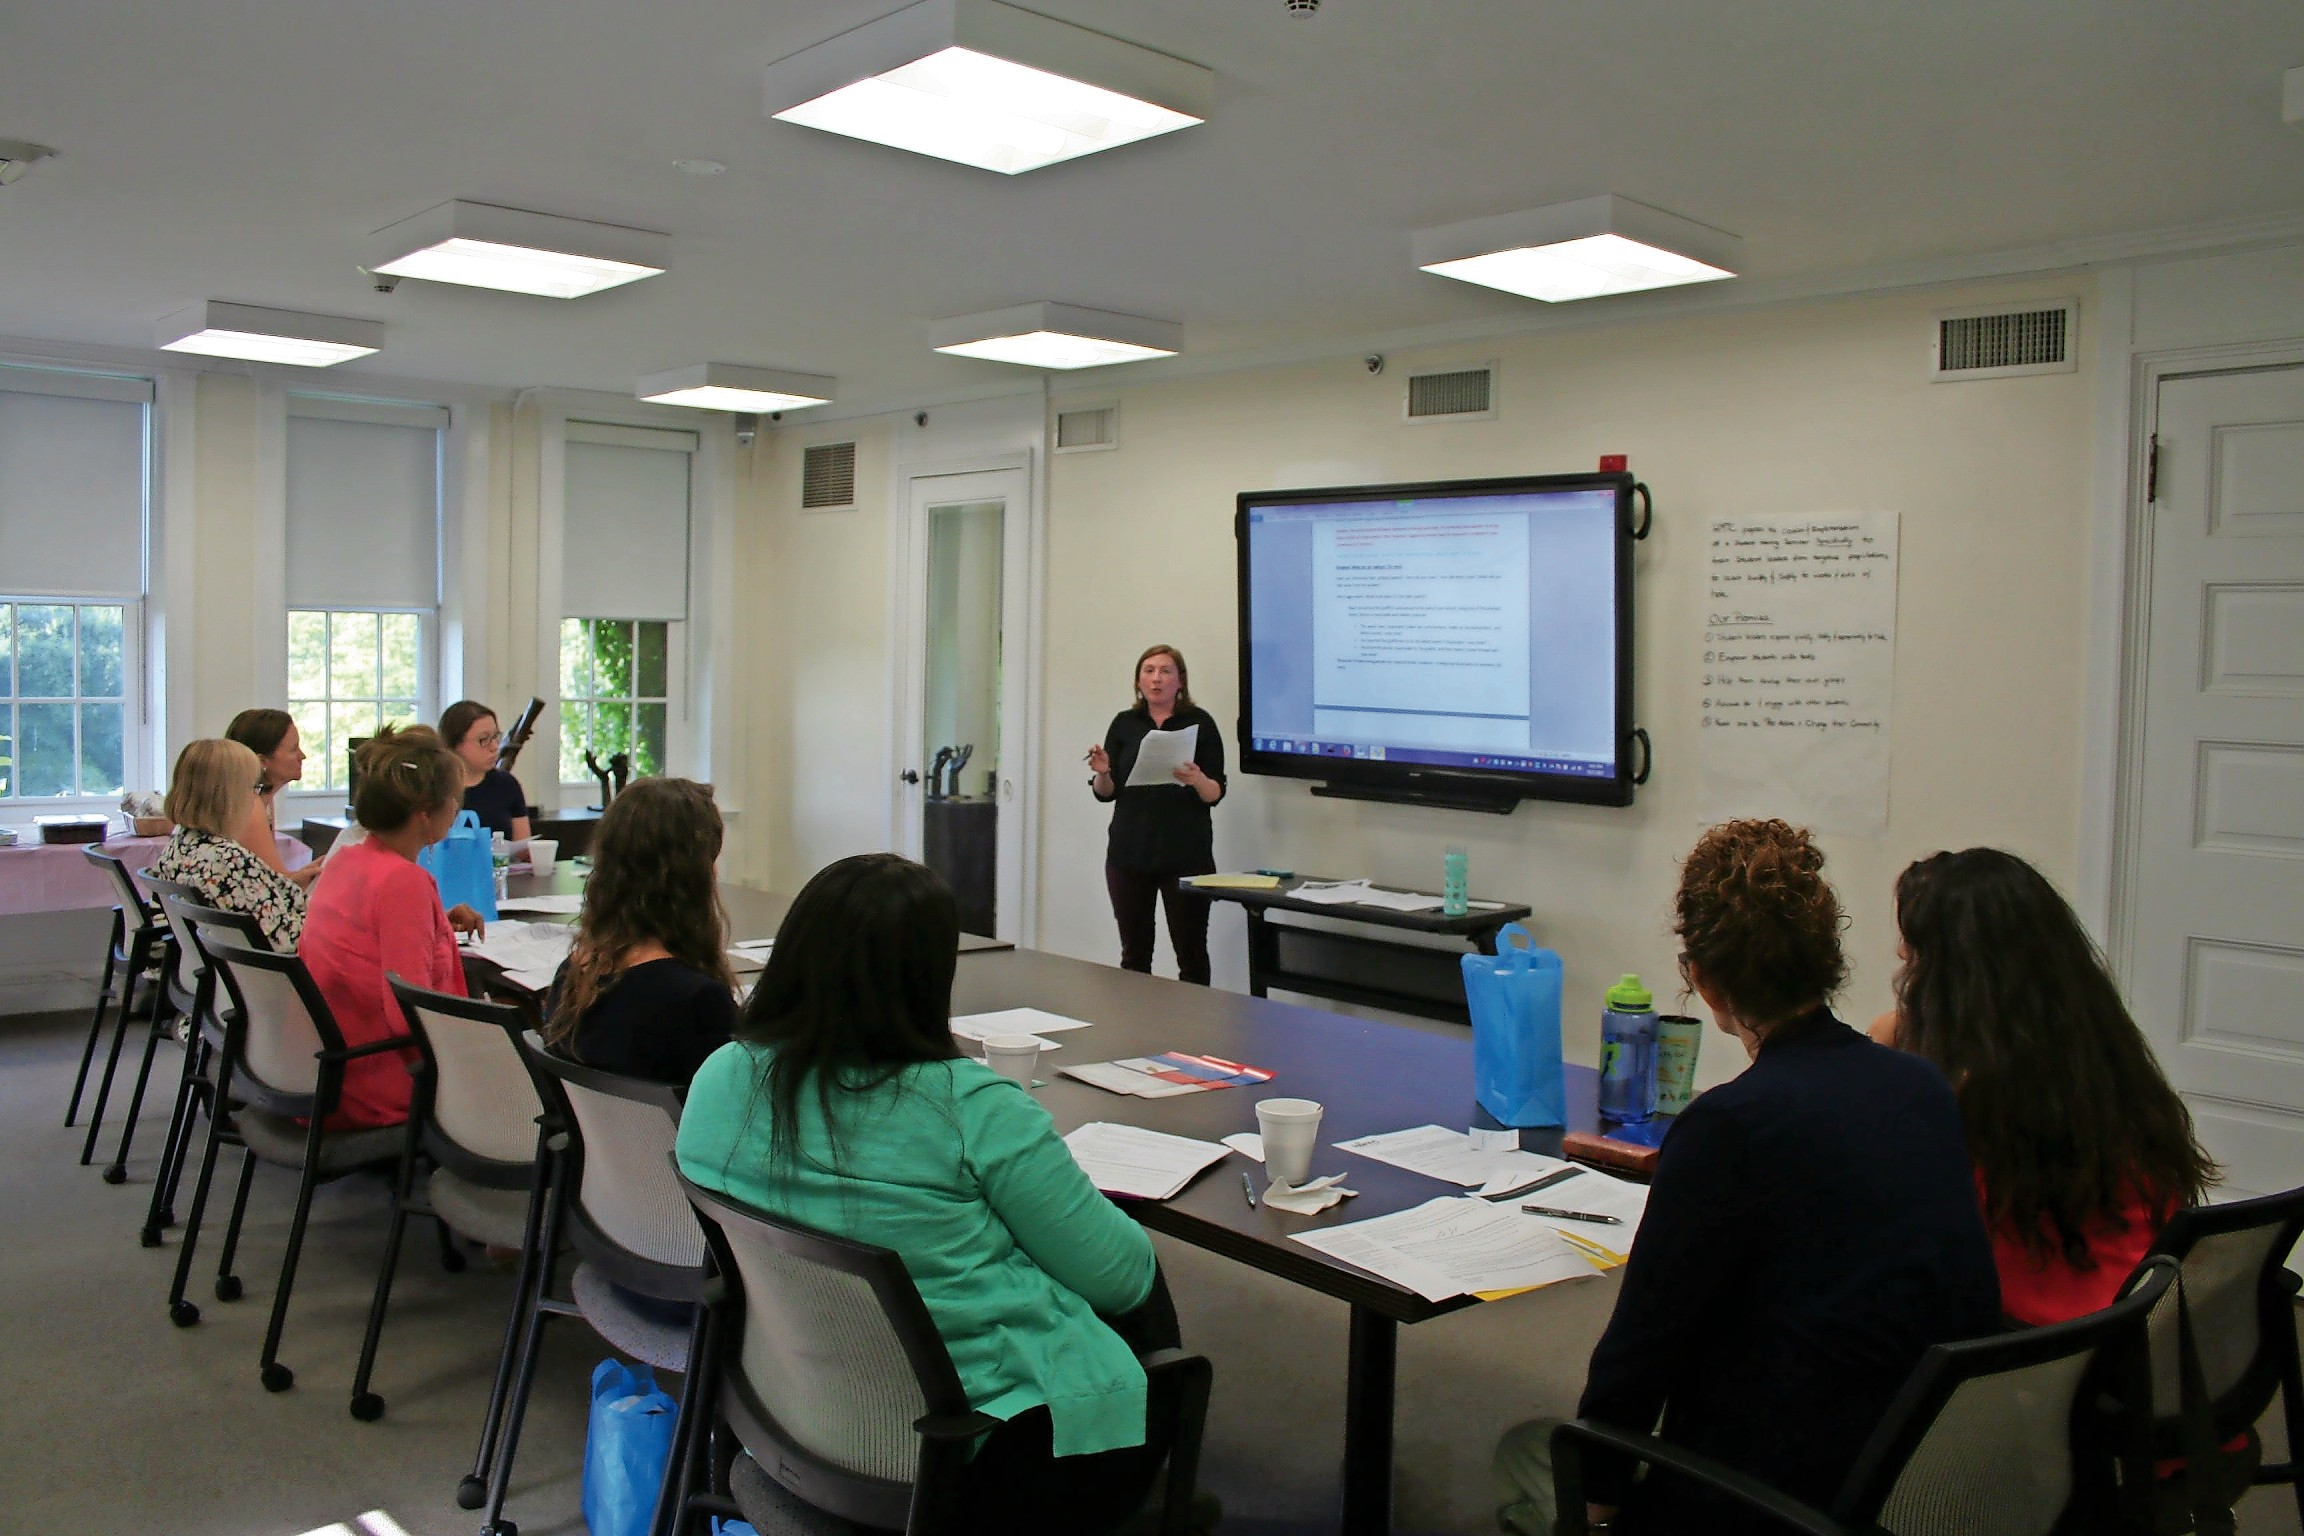 Adolescent Advocates Program manager Helen Turner held the first adult mentor training session on Aug. 17.